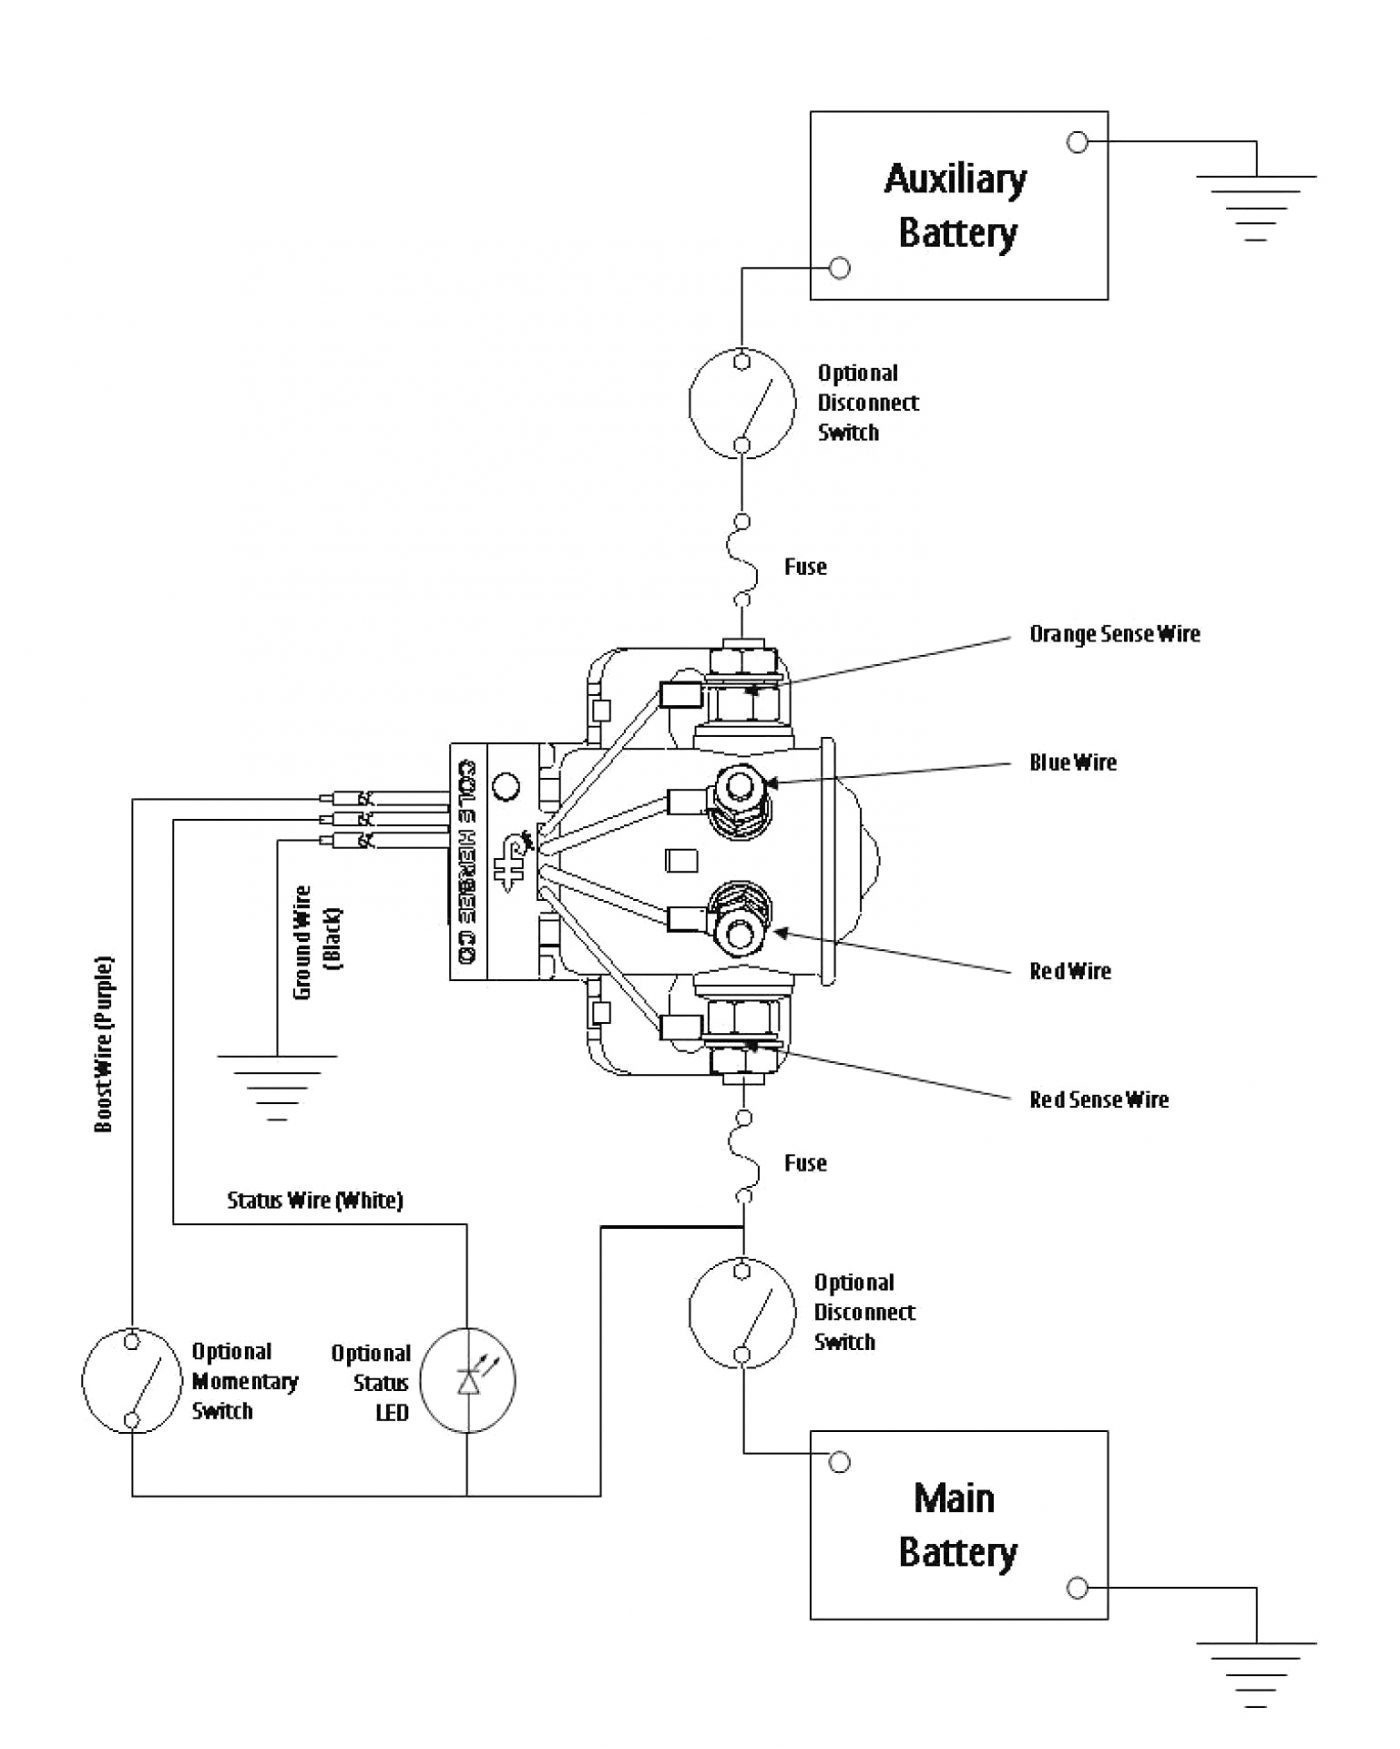 ac disconnect wiring diagram Download-Wiring Diagram for Ac Disconnect Save Wiring Diagram for isolator Switch Save Rv Battery Disconnect Switch 2-r